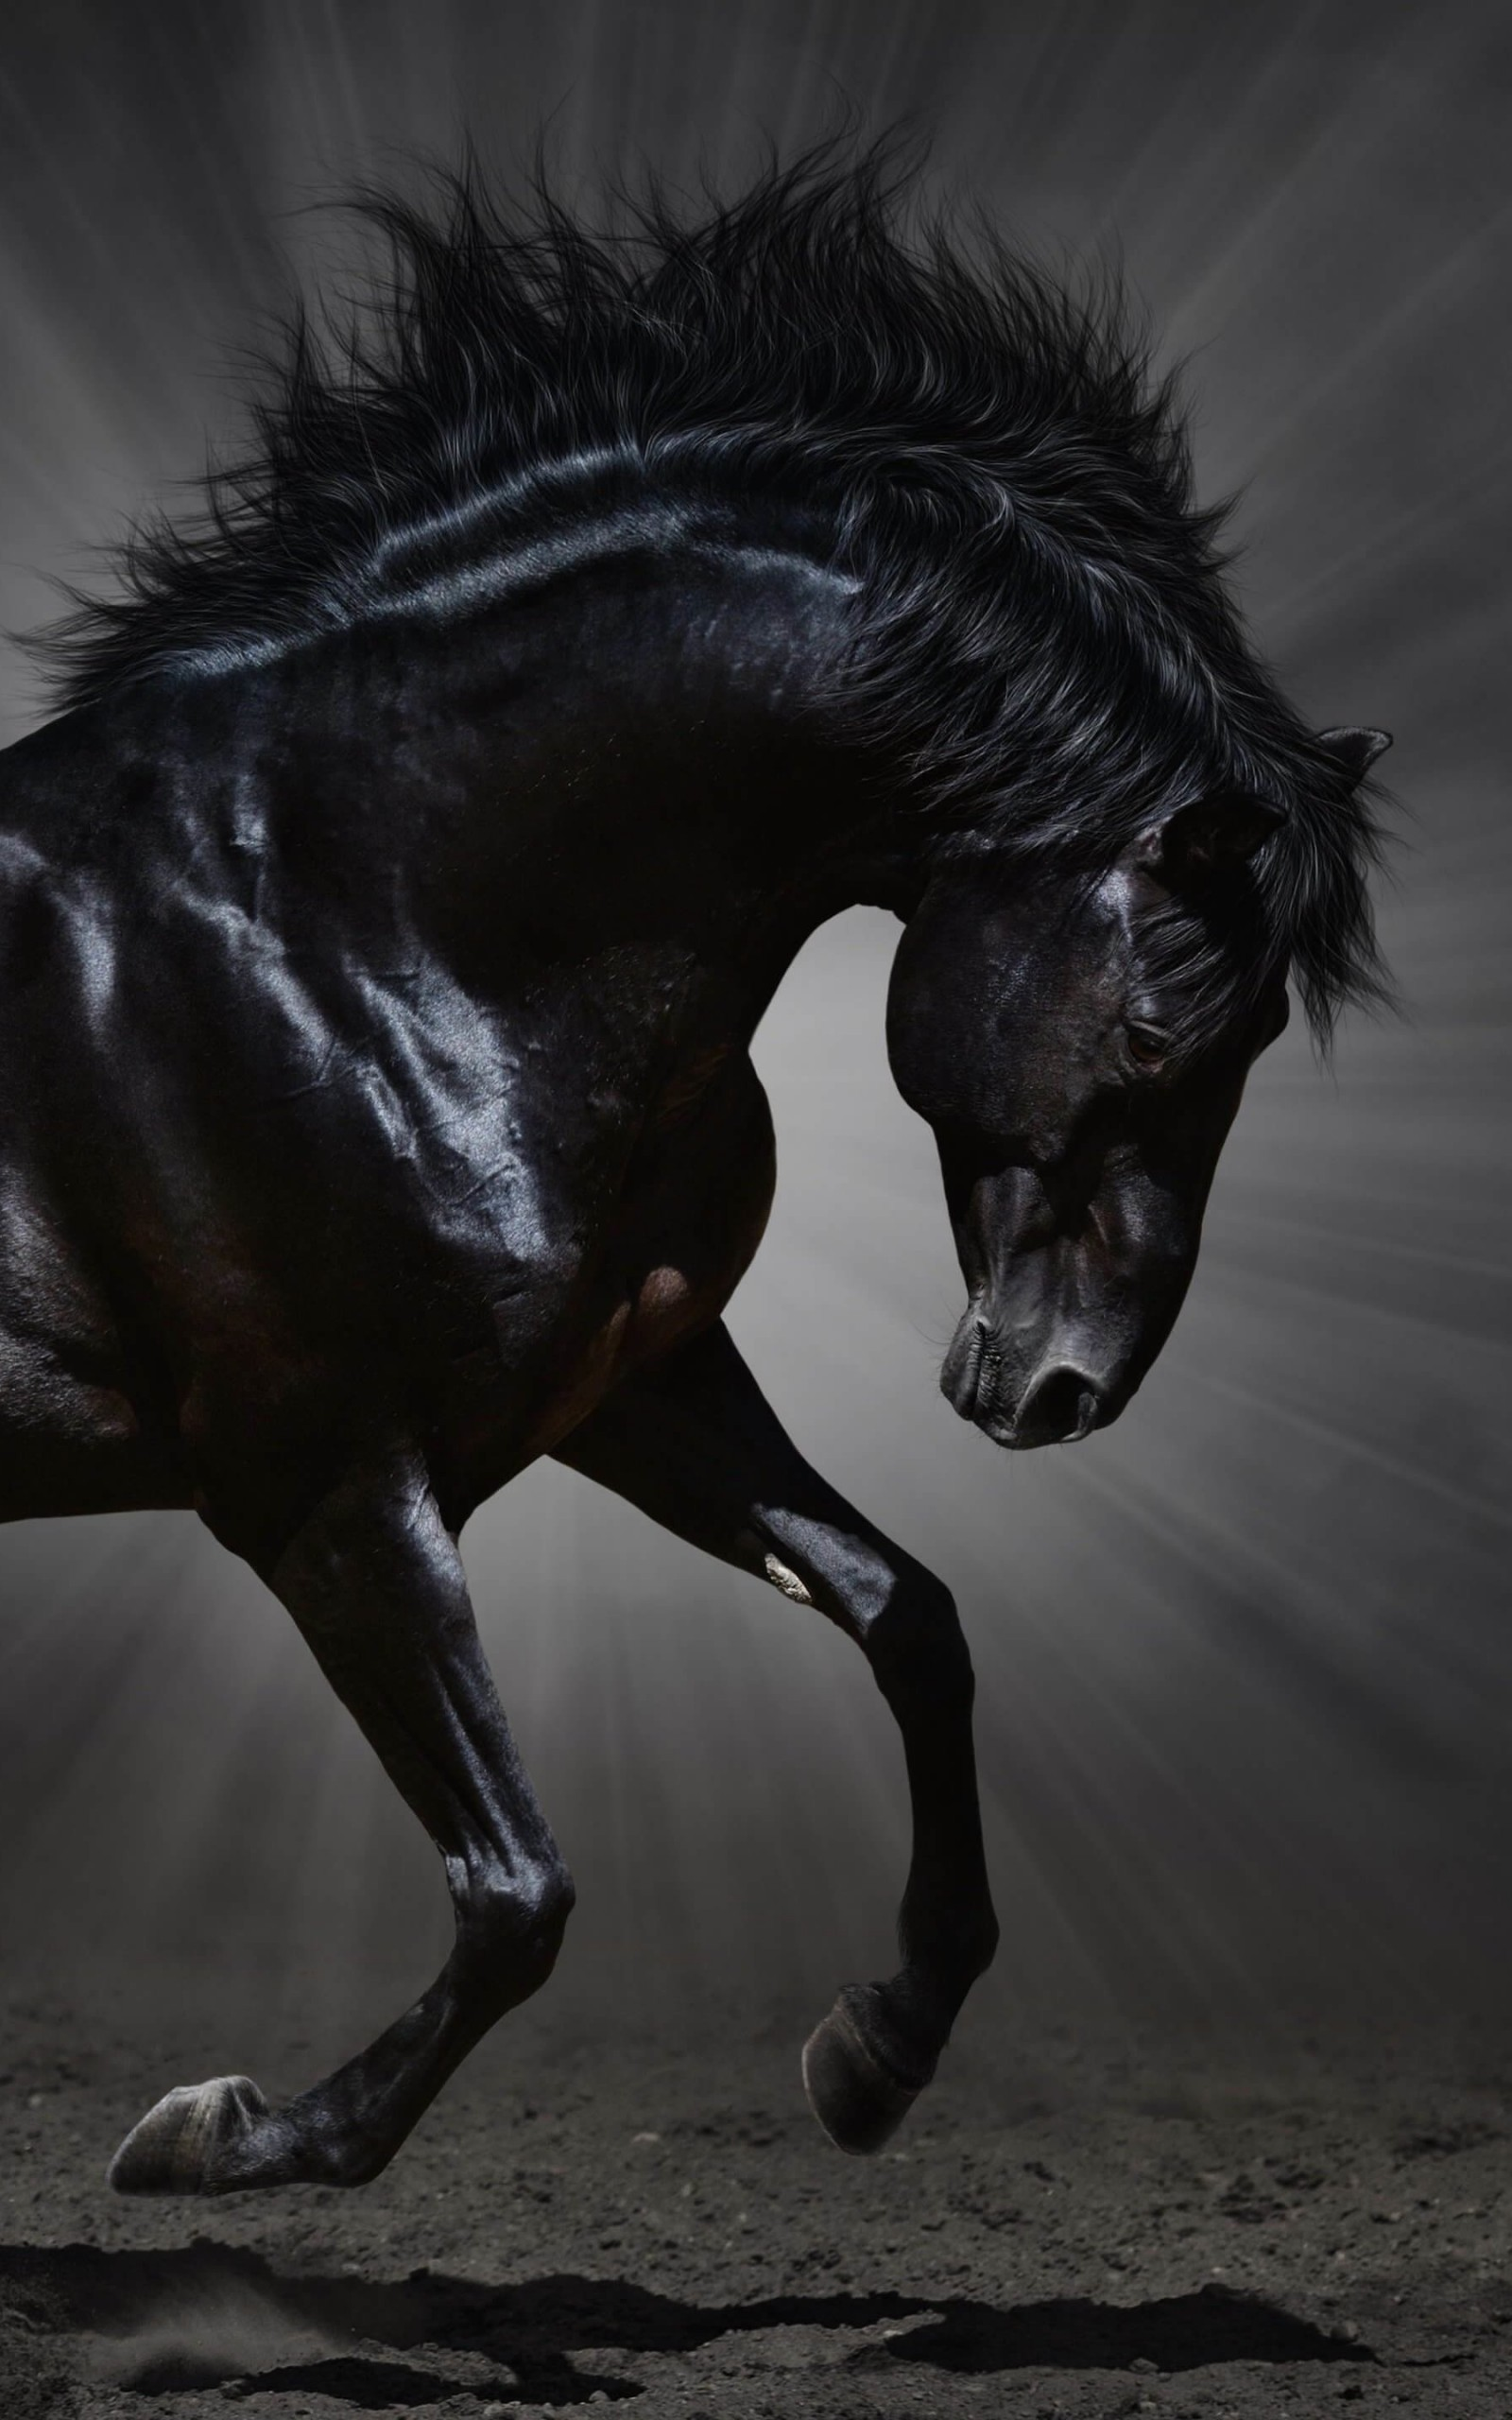 Dark Horse Wallpaper for Amazon Kindle Fire HDX 8.9